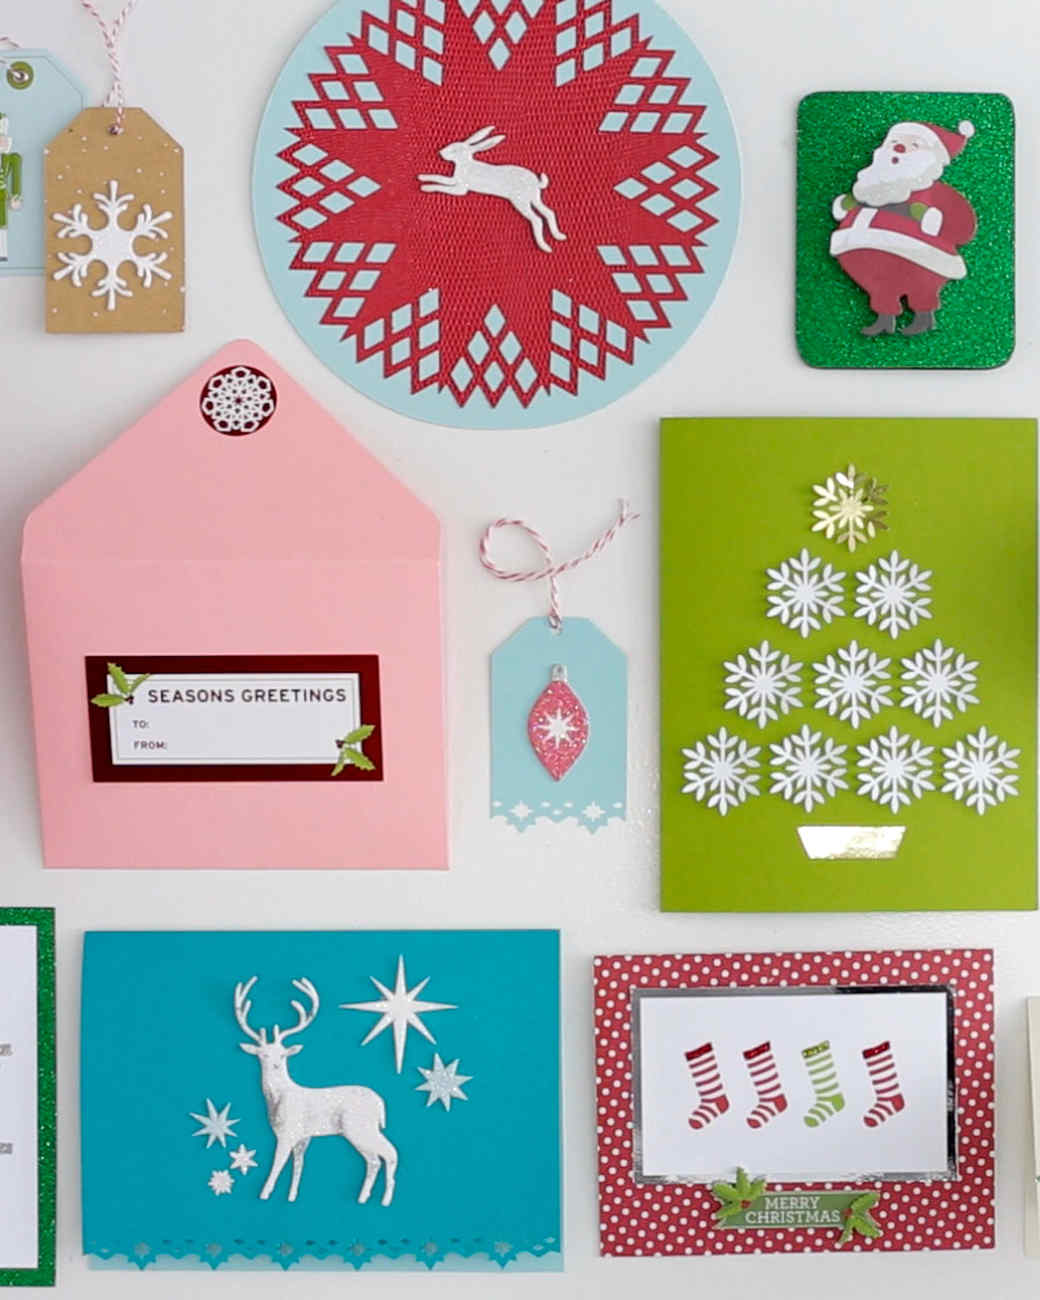 martha_stewart_crafts_holiday_card_making.jpg